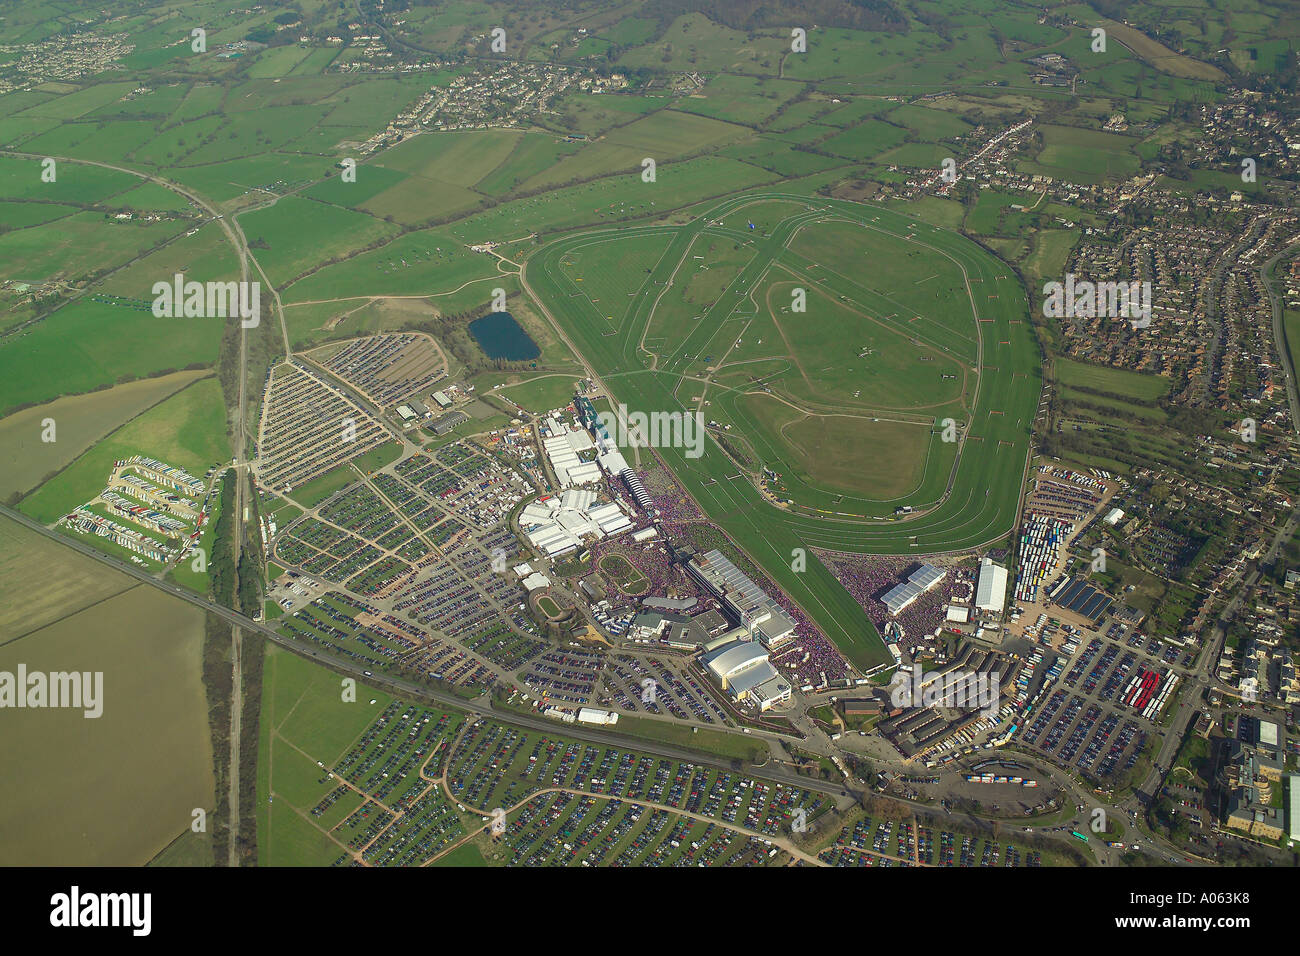 Aerial view of Cheltenham Gold Cup Horse Race at Cheltenham Racecourse during the Cheltenham Festival, won by Kicking King Stock Photo